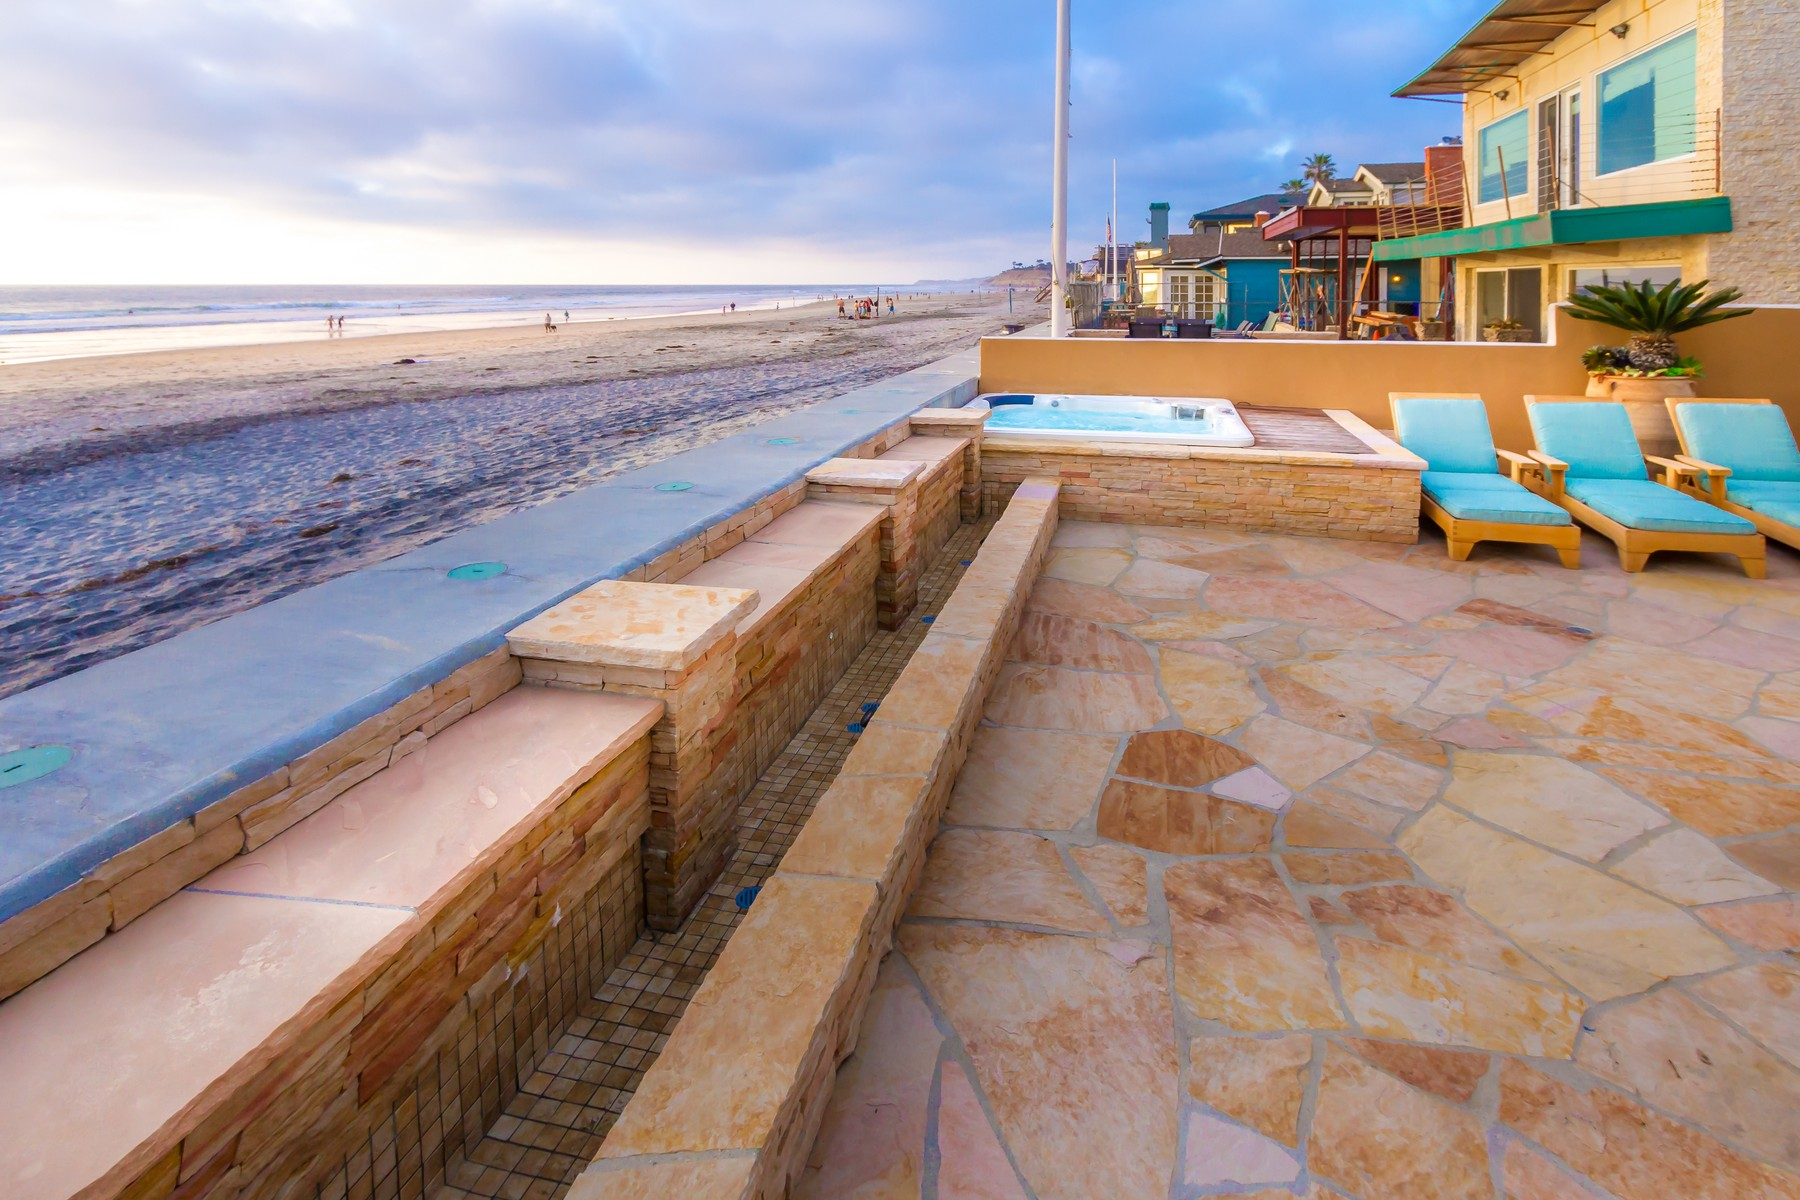 Additional photo for property listing at 2016 Ocean Front Drive  Del Mar, California 92014 United States